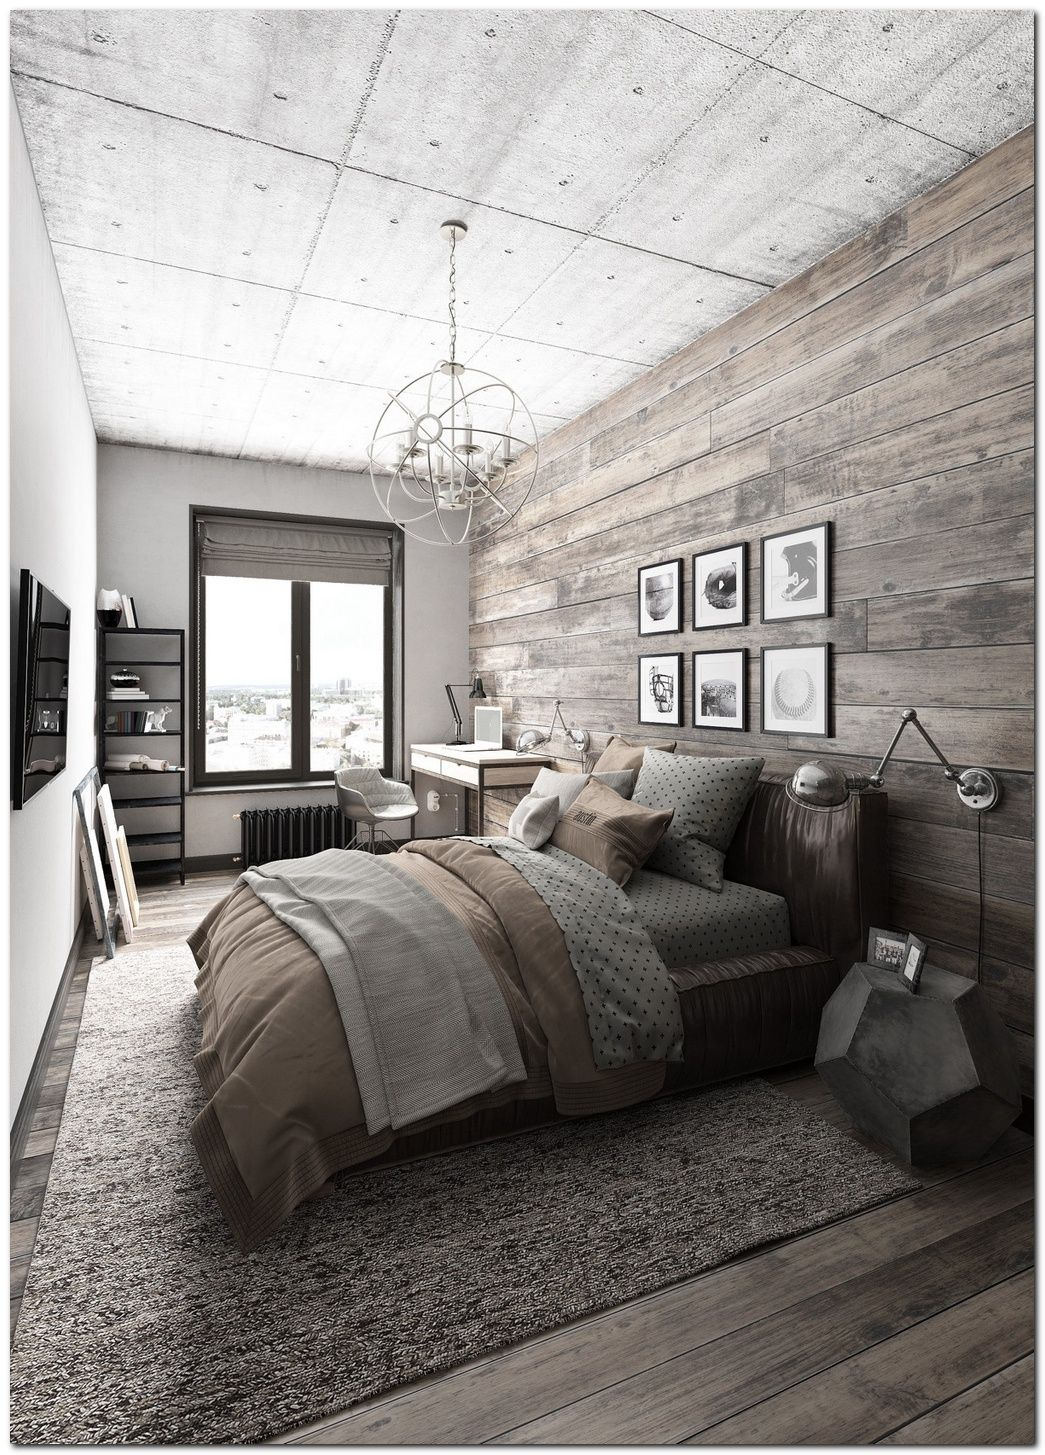 Lovely 70+ Ideas For Industrial Bedroom Interior